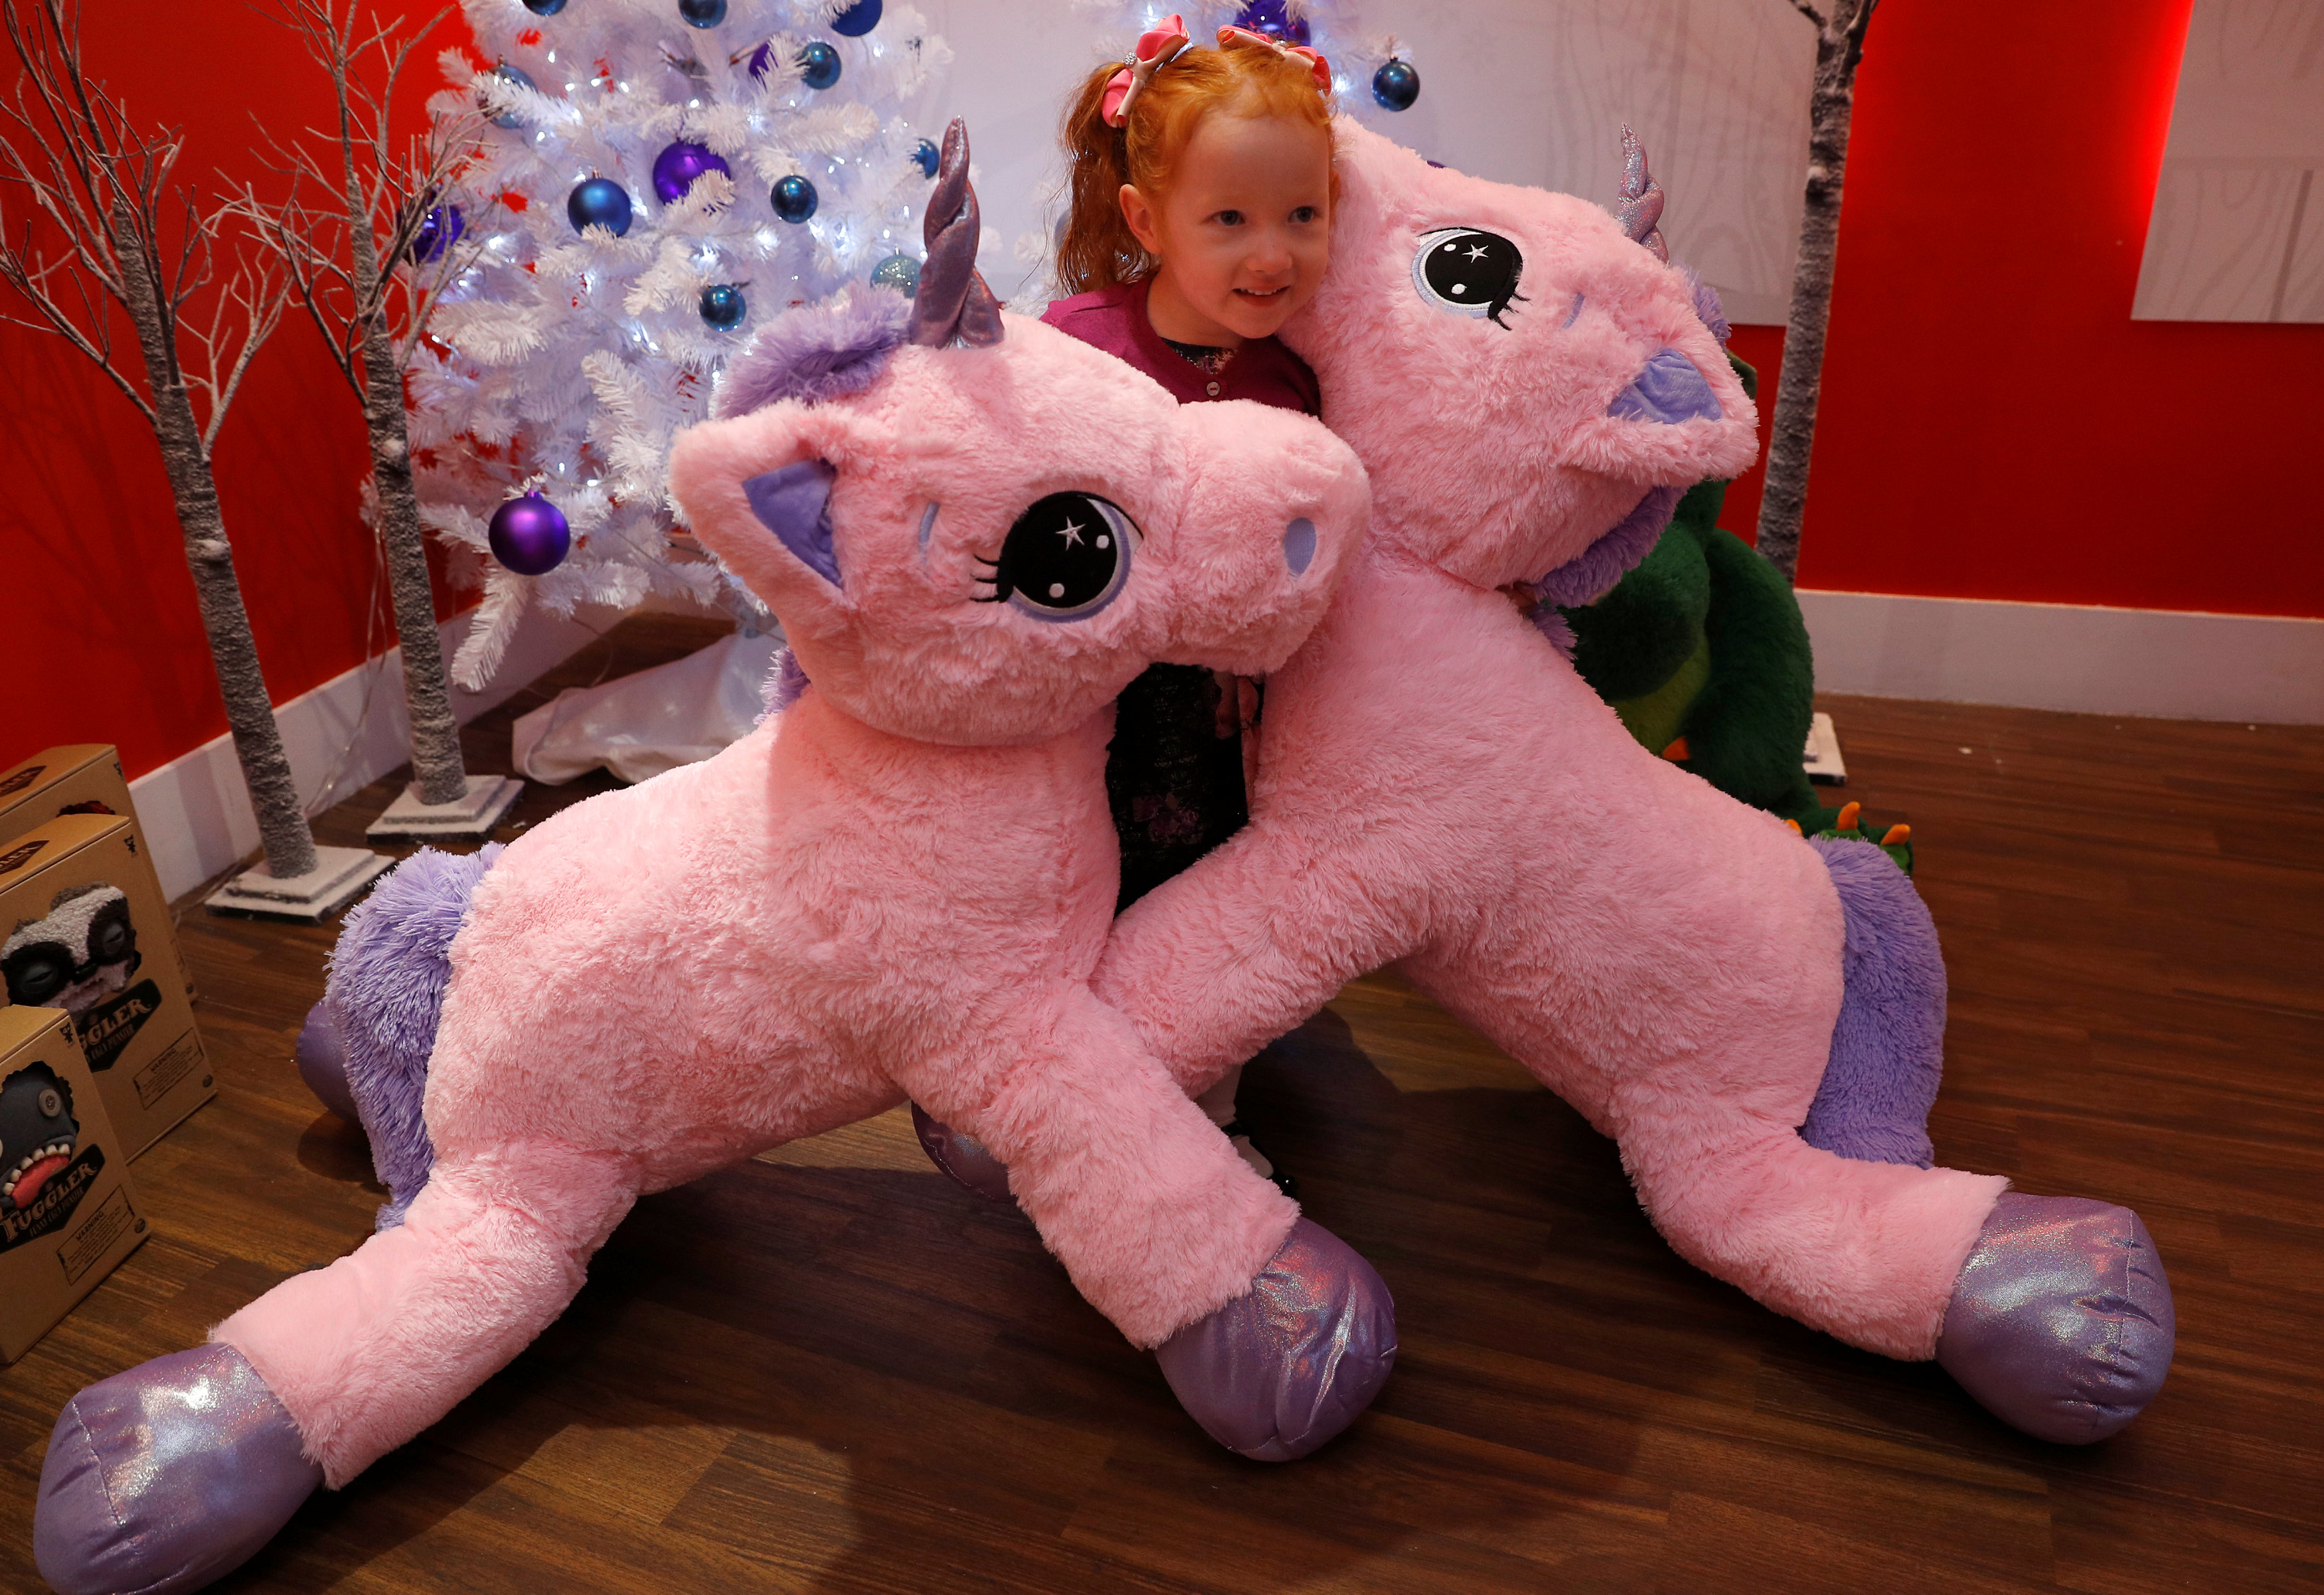 Aston Robertson-Jeyes, aged 3, plays with Unice Unicorn, at the launch of Hamleys top Christmas toys launch in London